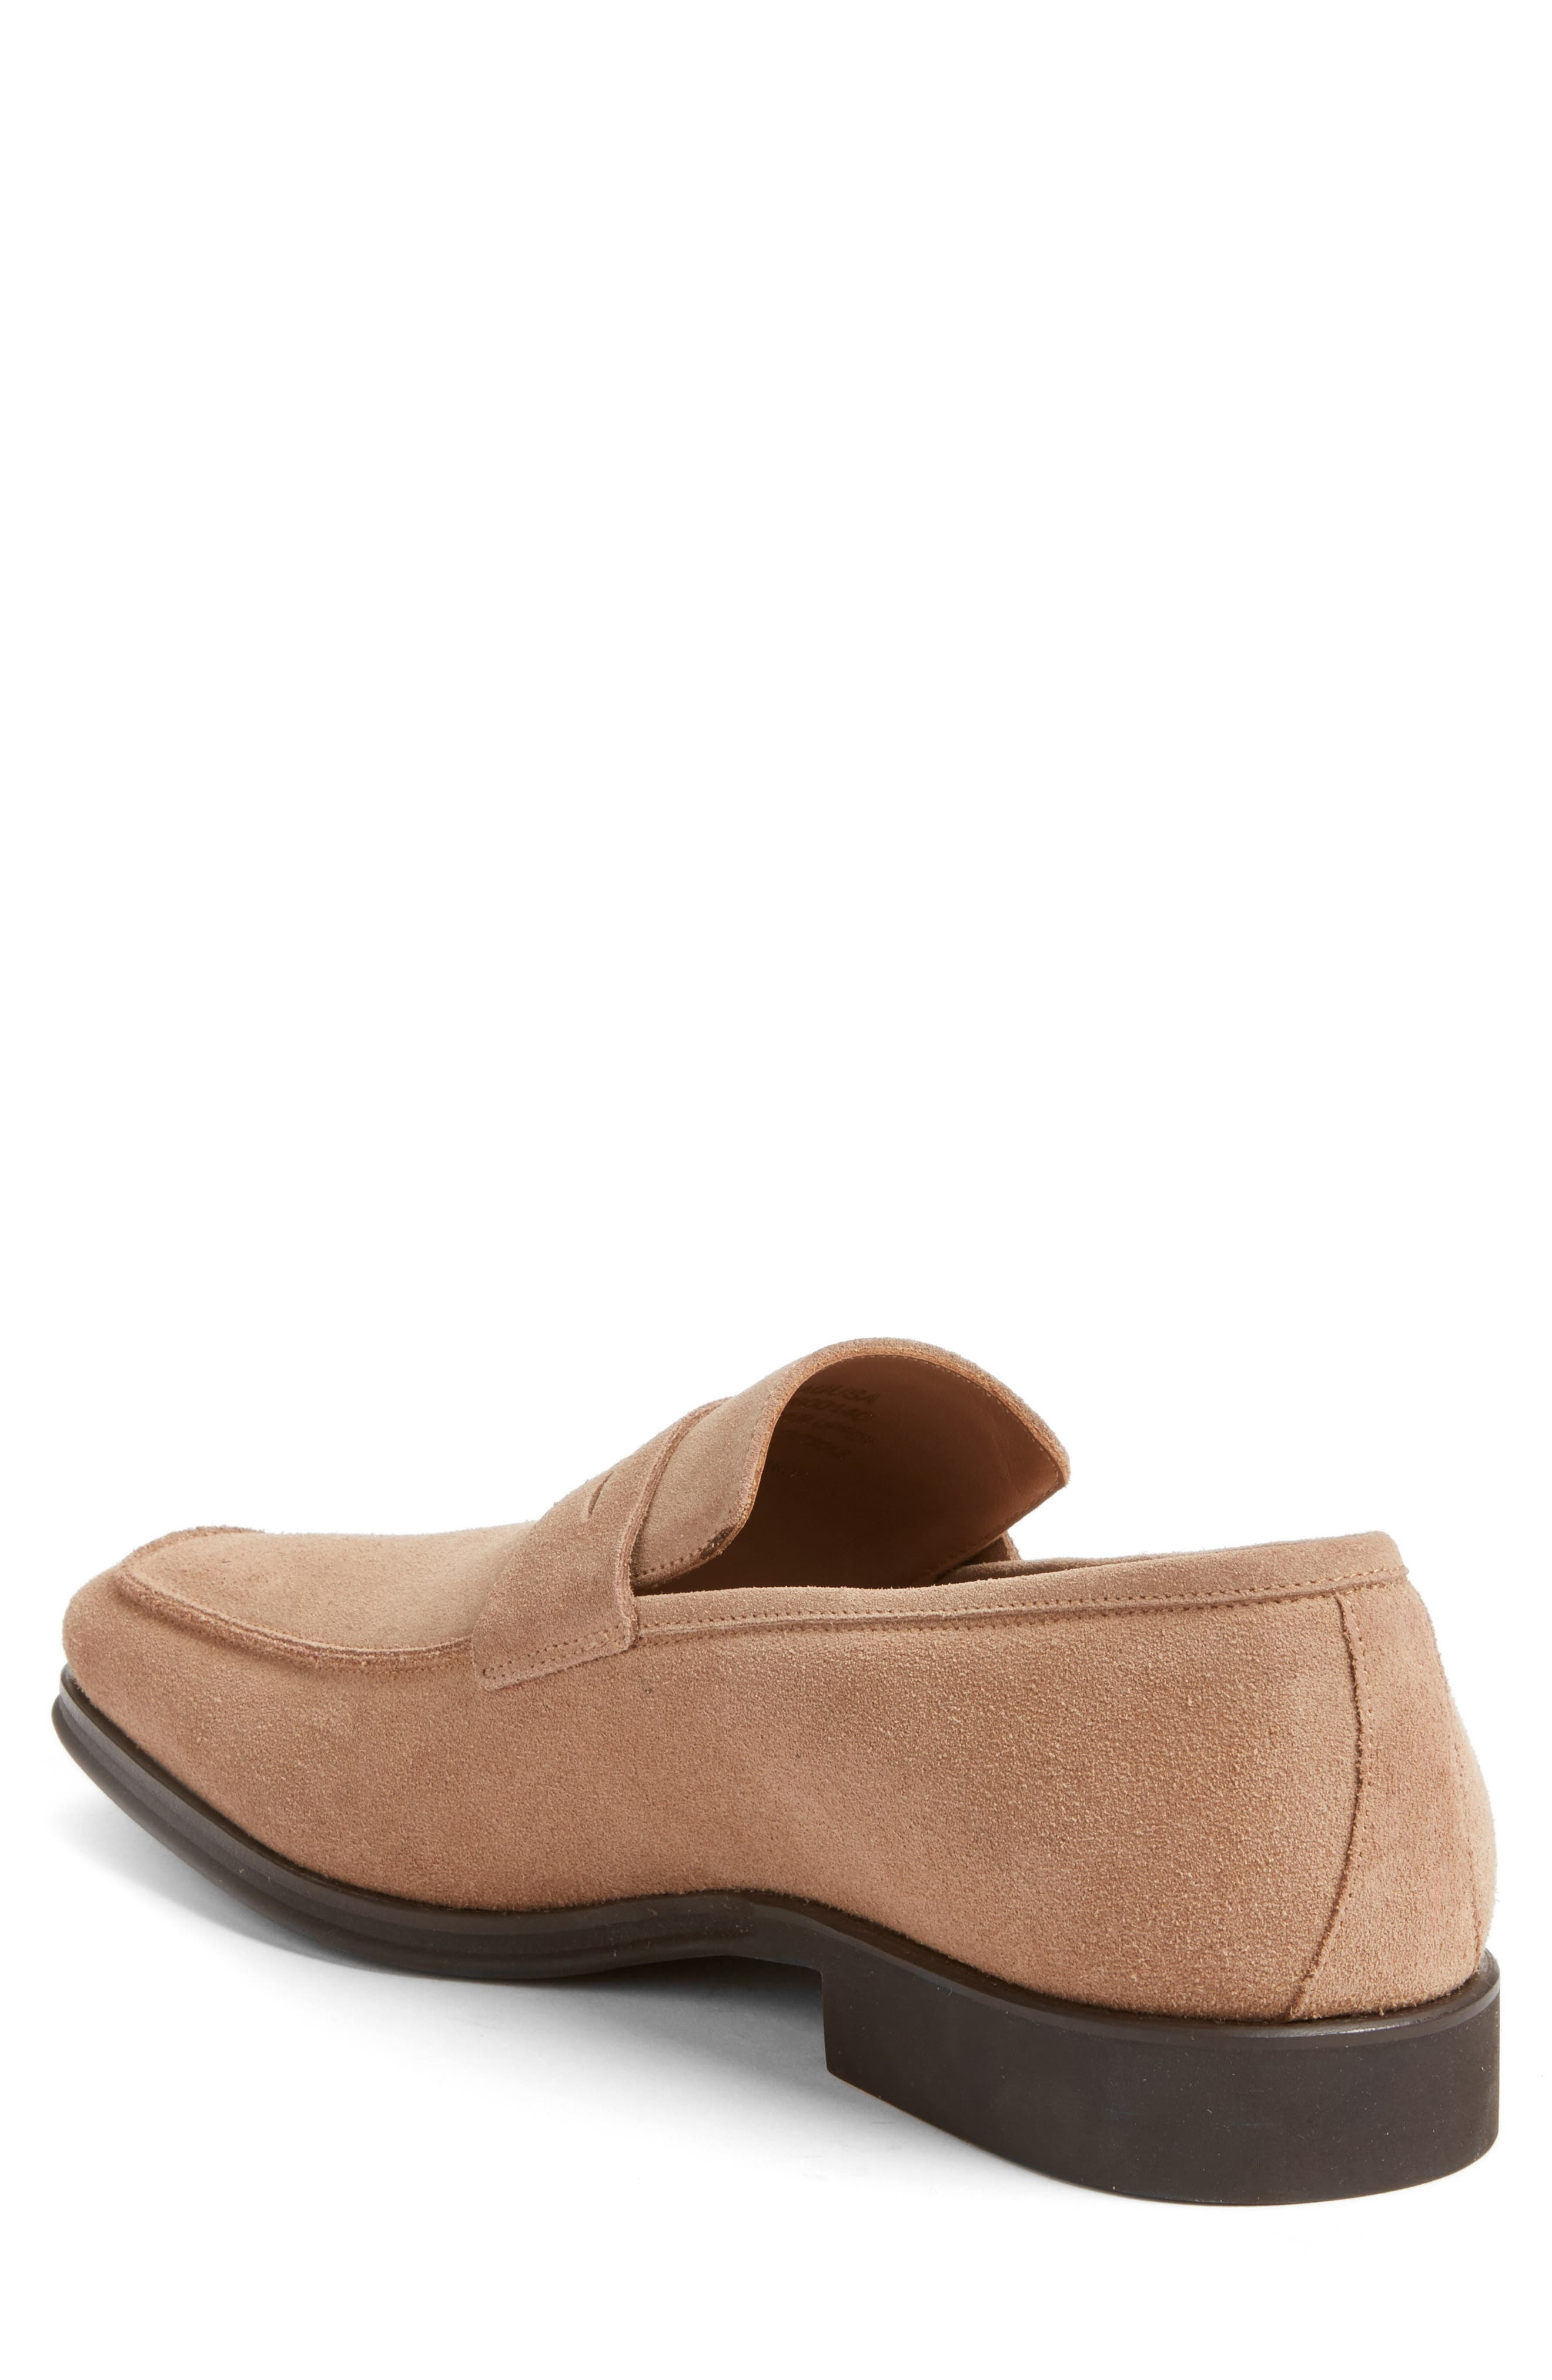 Ragusa Penny Loafer,                             Alternate thumbnail 5, color,